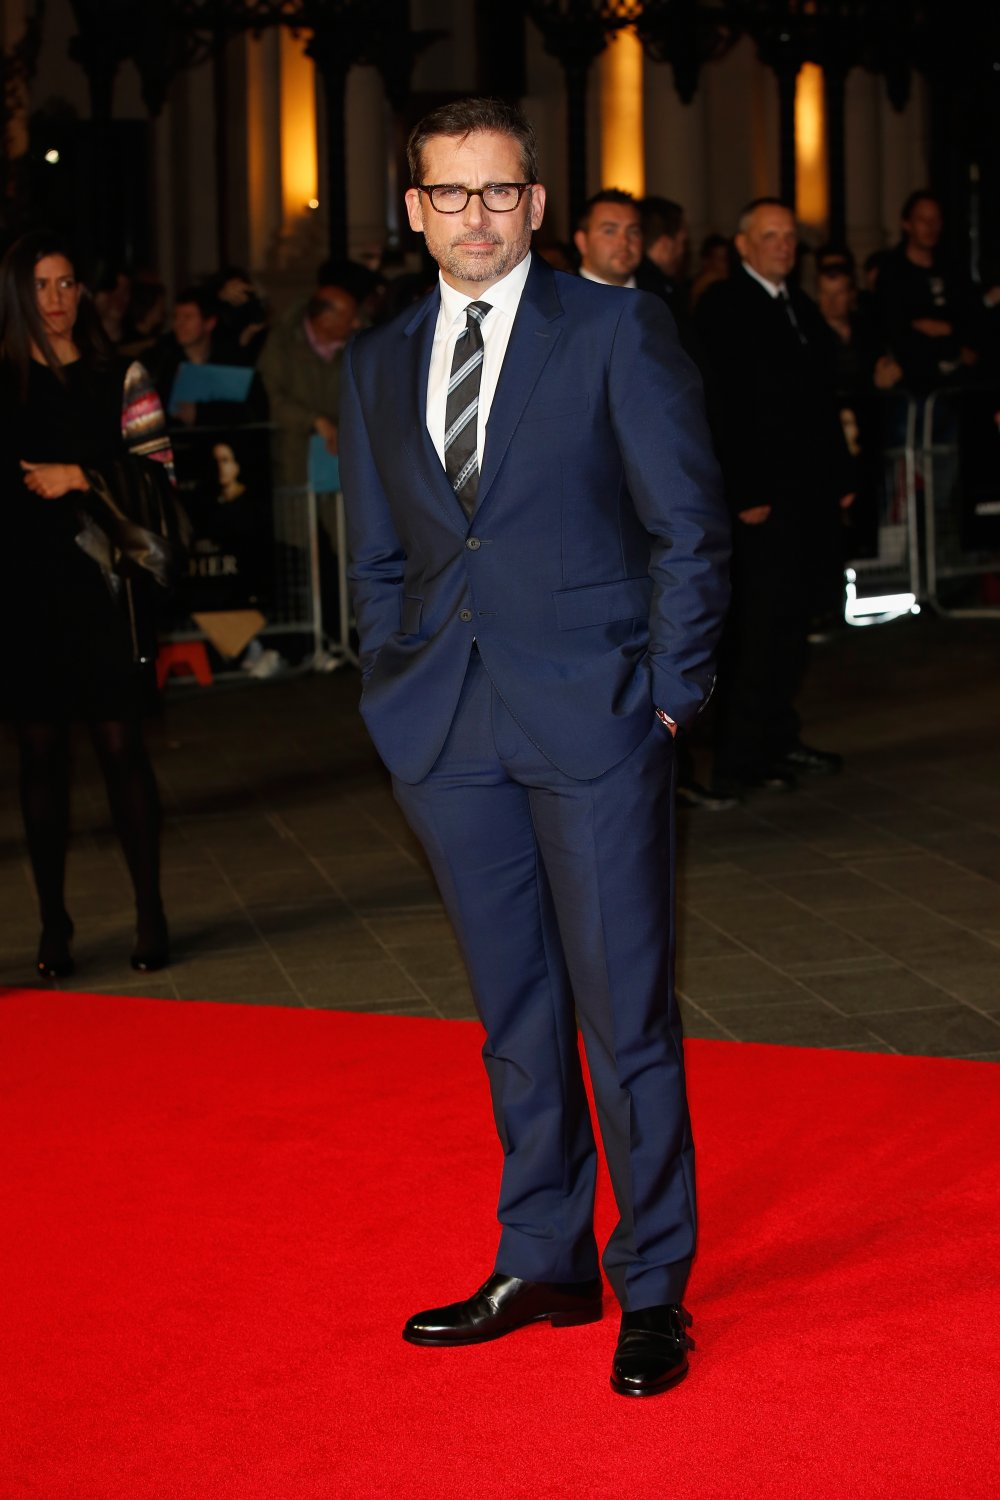 Steve Carell on the red carpet for Foxcatcher during the 58th BFI London Film Festival